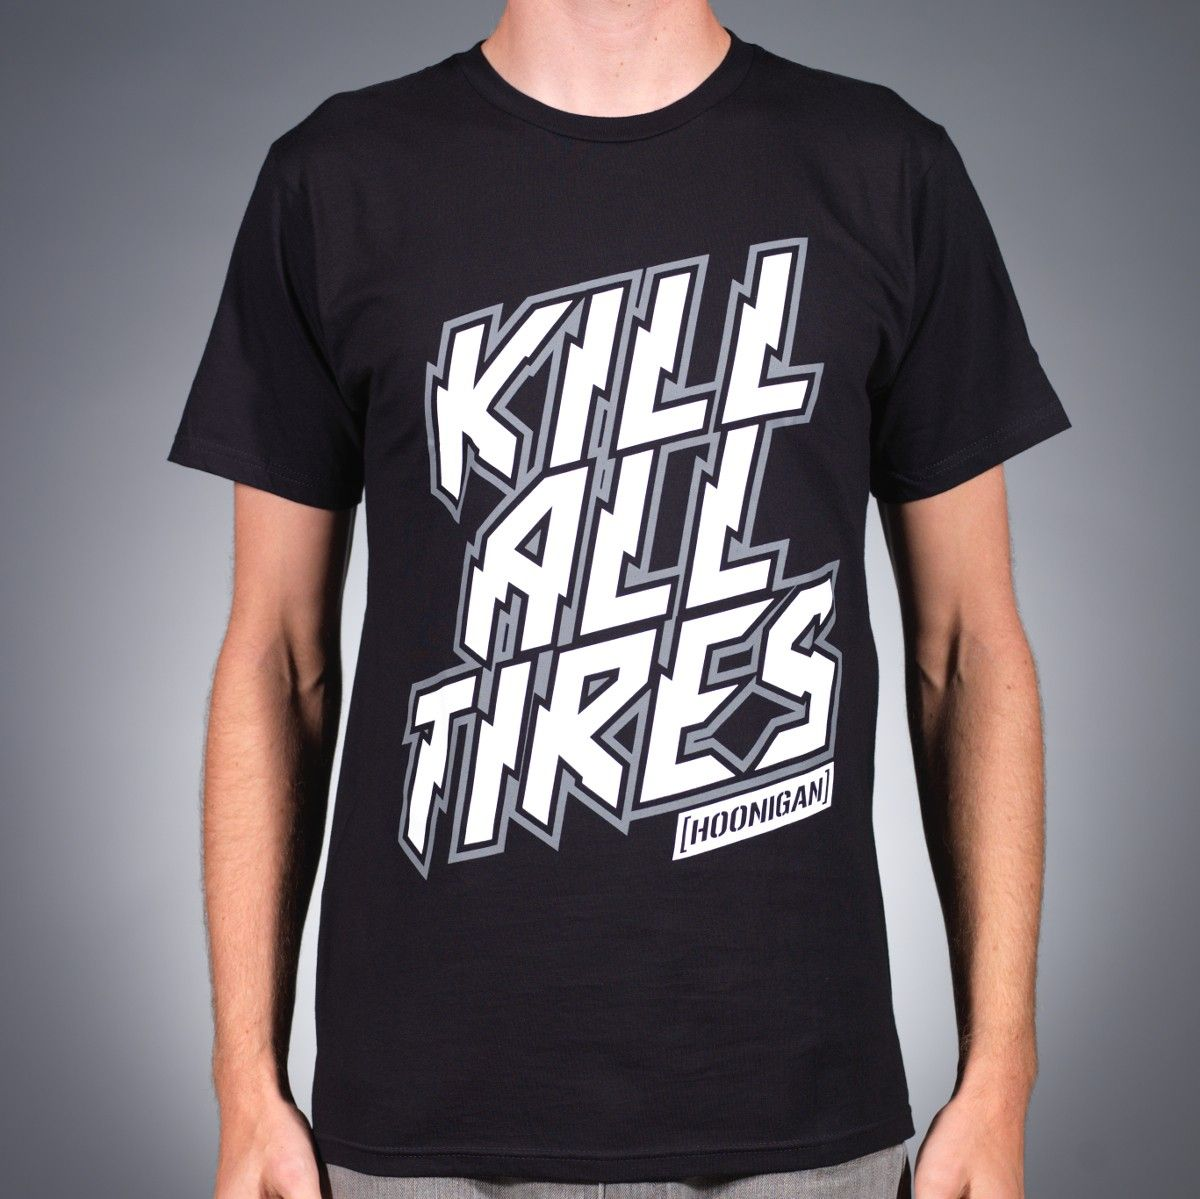 Hoonigan Tire Slayer Short Sleeve Graphic Youth T-Shirt Perfect for Car and Drifting Enthusiasts Available in Small to 3X Mechanics and Gear Heads